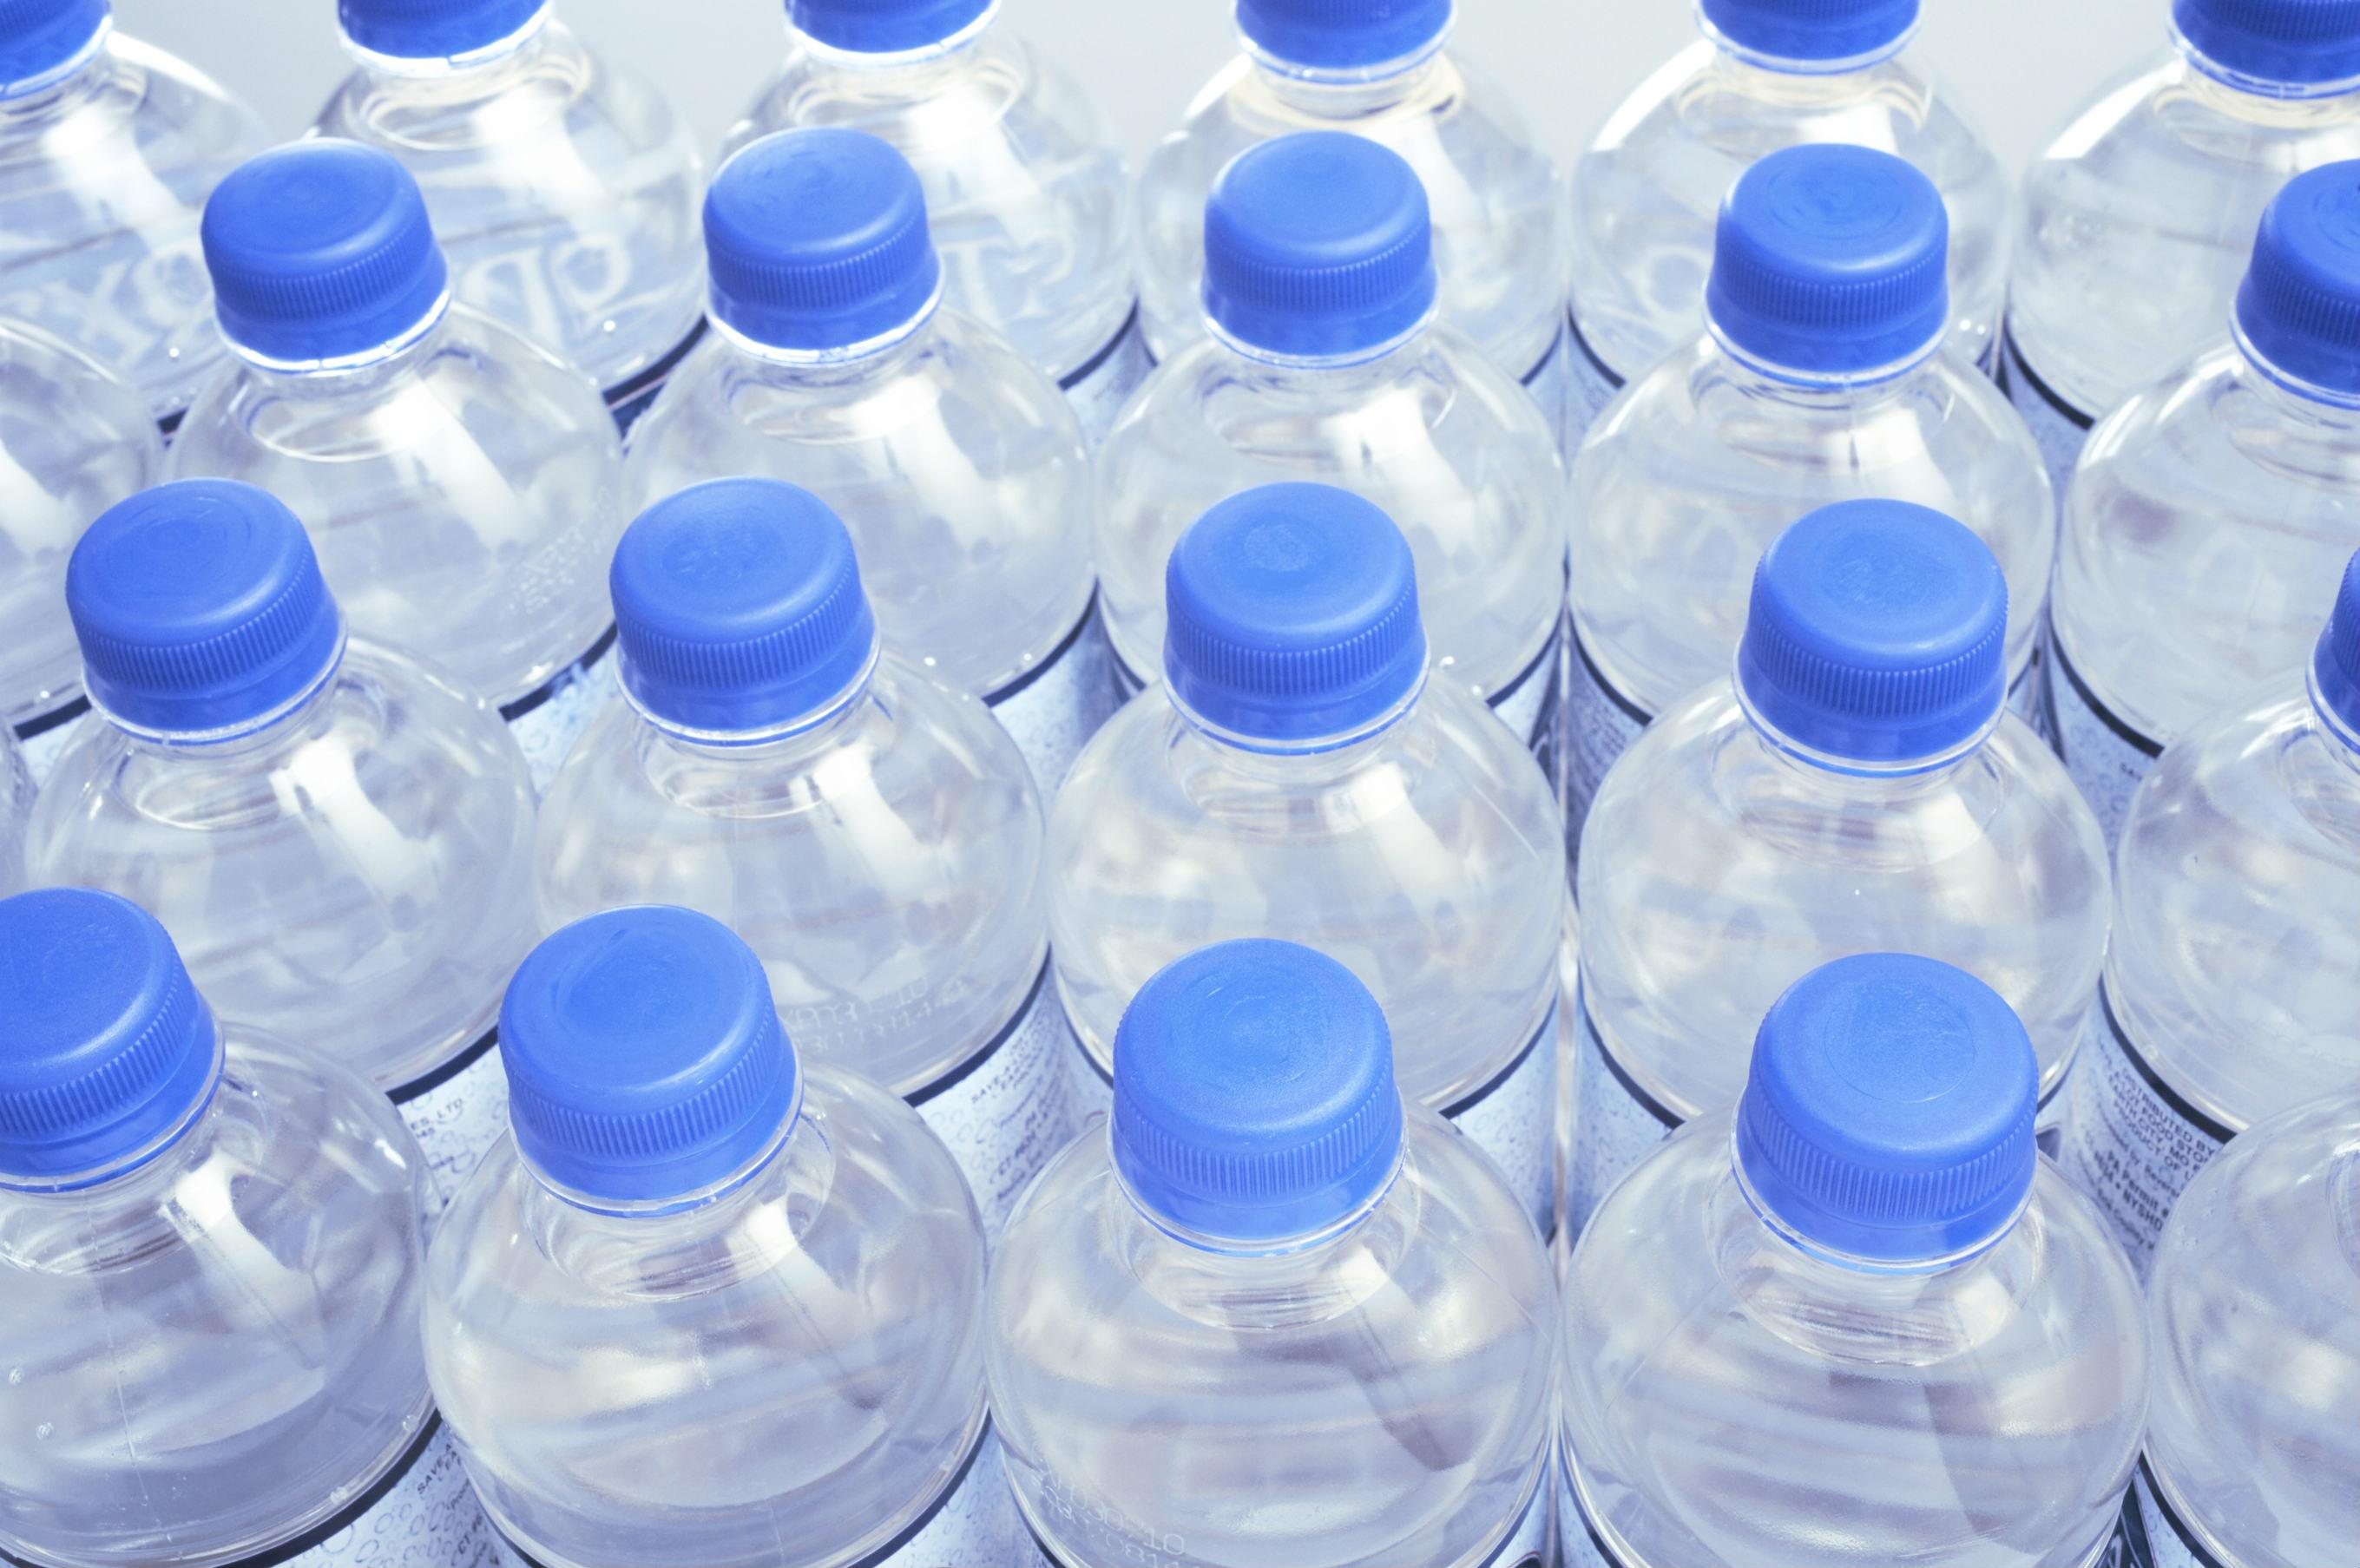 Why are we drinking bottled water? Premier wants debate on